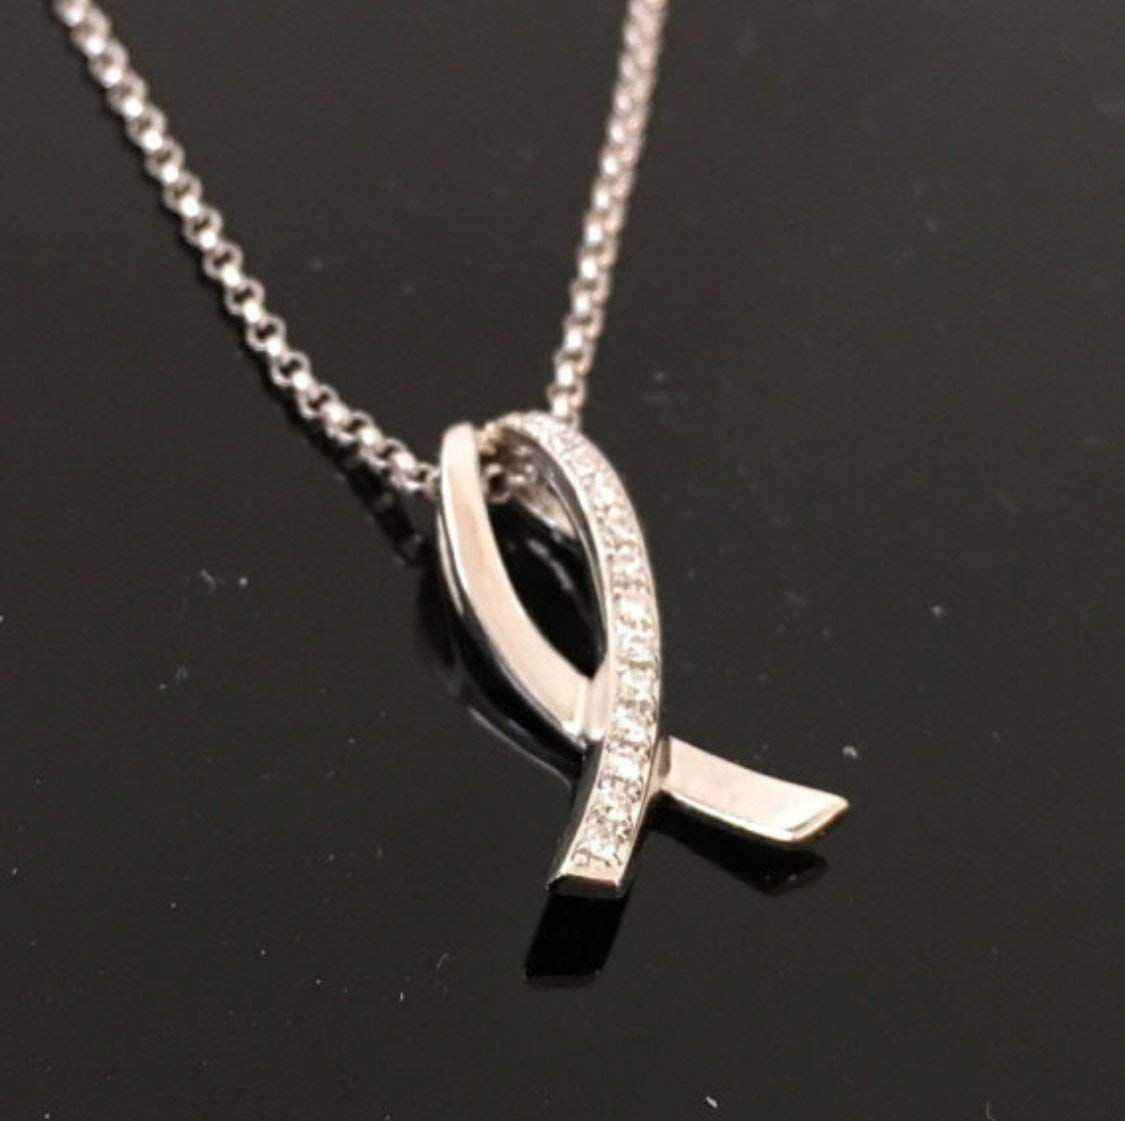 14K White Gold Genuine Diamond Pave Breast Cancer Awareness Ribbon - 14K White Gold 14K Rose Gold 14K Yellow Gold and Diamond Pink Ribbon Pendant with chain - Solid 14K Gold Pink Ribbon Necklace